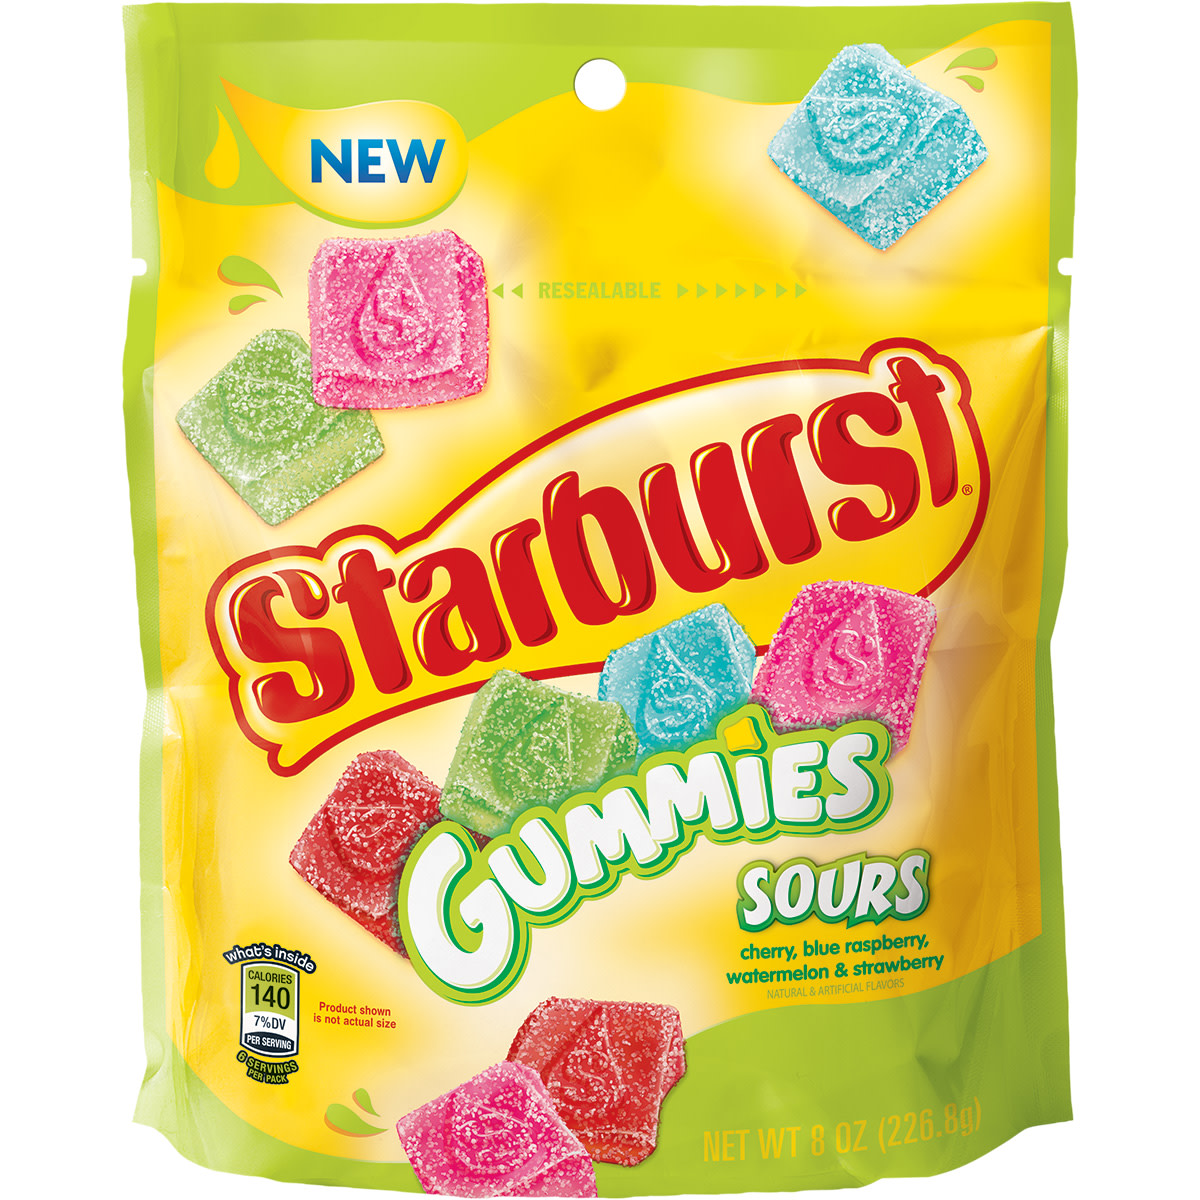 Starburst, Chewy Gummies Sours Candy, 8 Oz